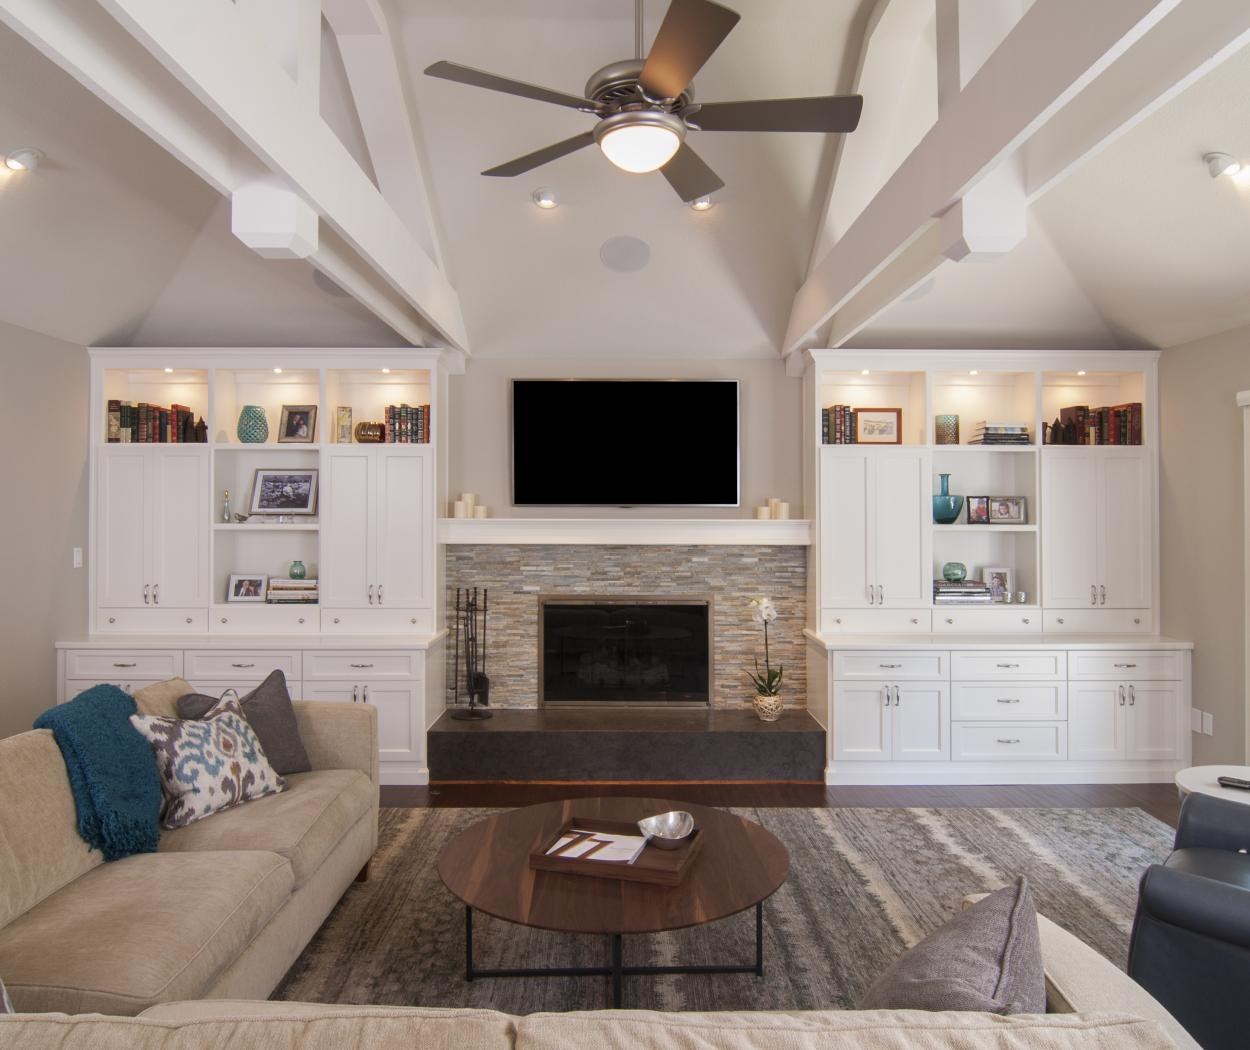 Beautiful White Entertainment Center with Open Shelves, Puck Lighting and Silver Knobs - Pulls